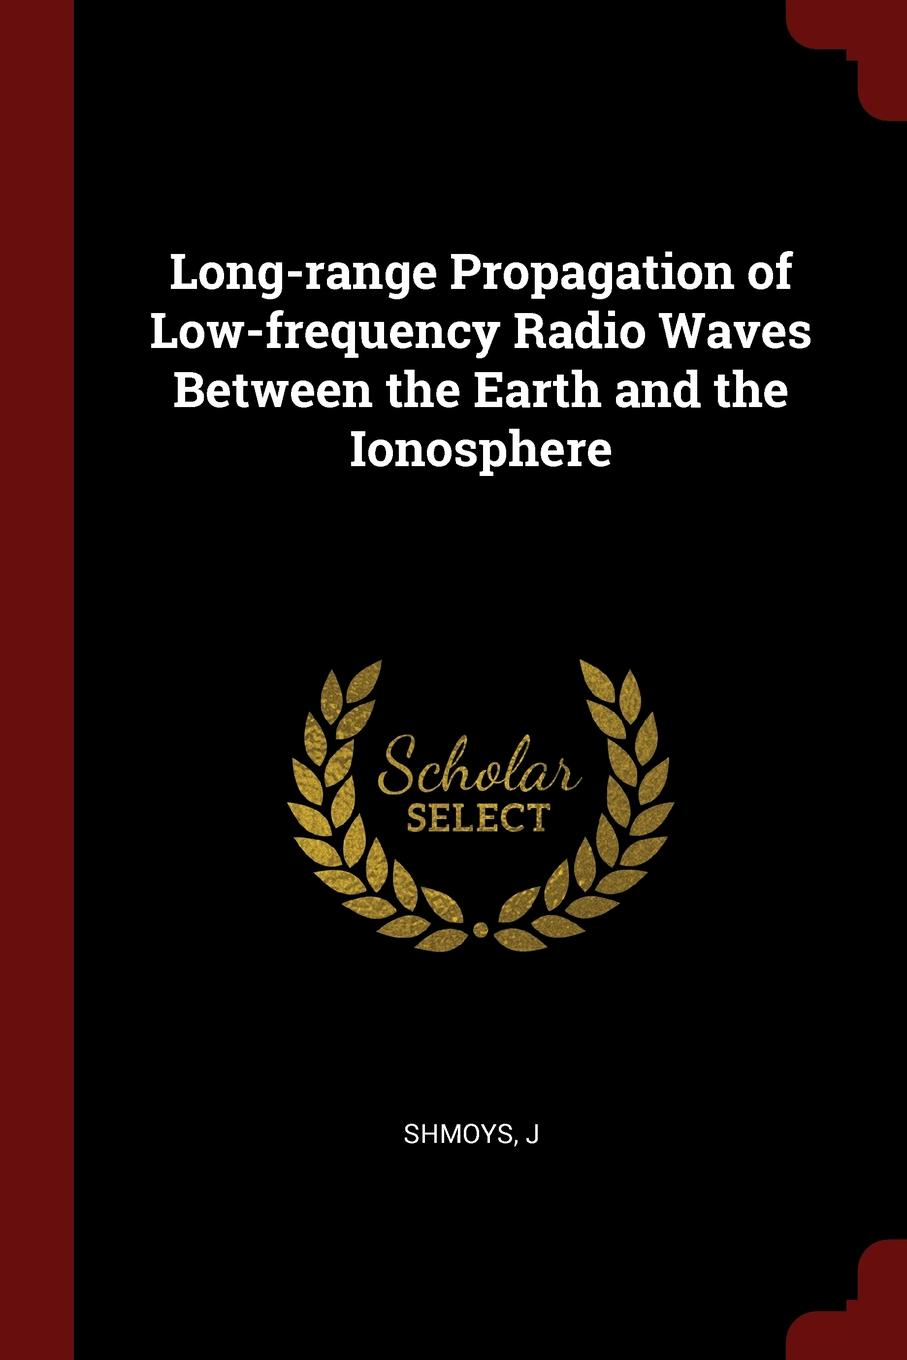 Long-range Propagation of Low-frequency Radio Waves Between the Earth and the Ionosphere